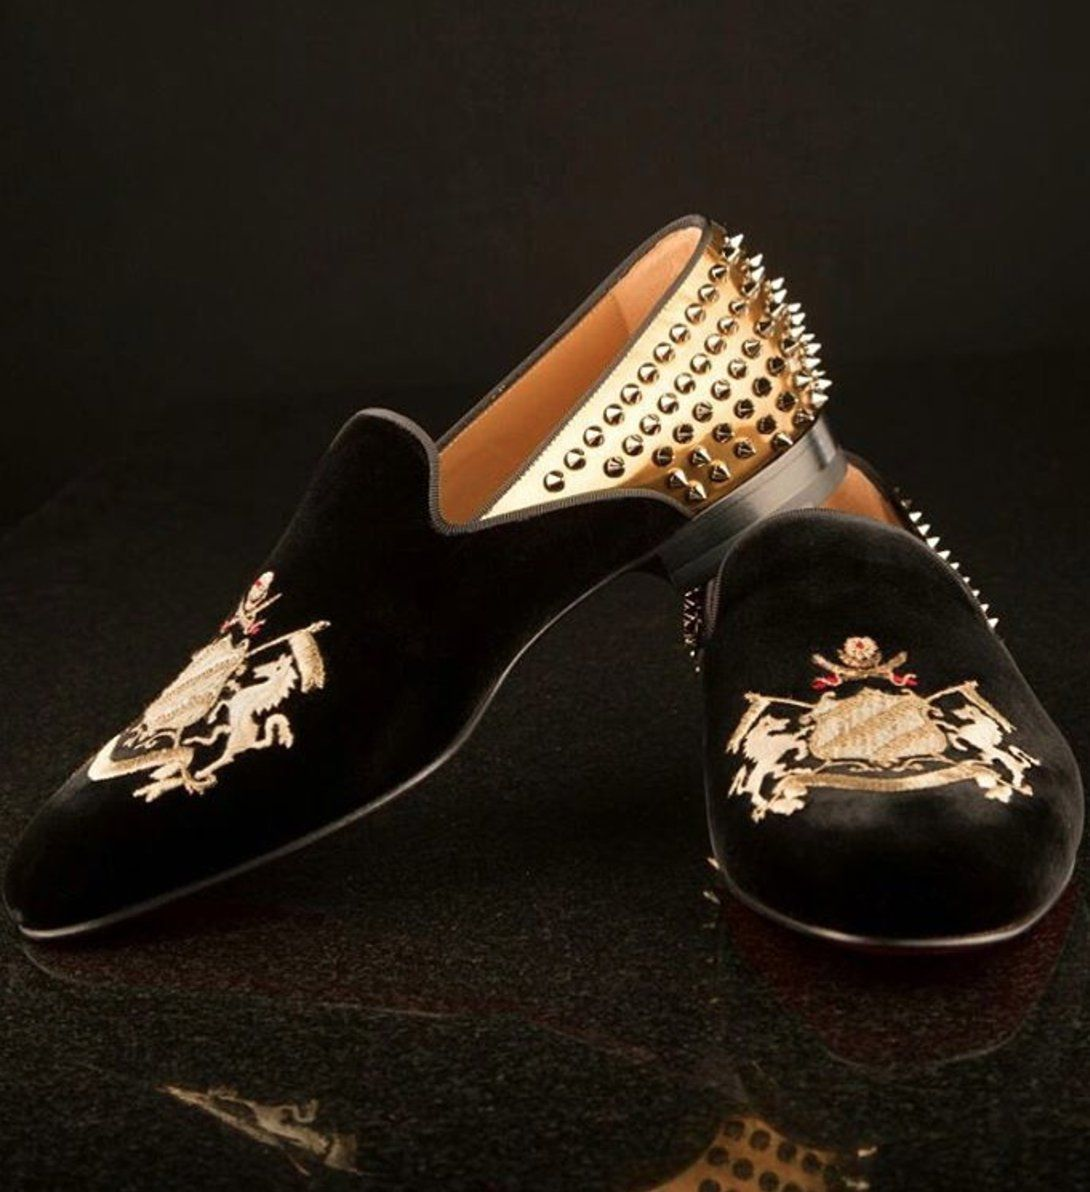 23e7ad2a74c8 Mens black loafers with spikes at the back by Sabyasachi x Christian  Louboutin